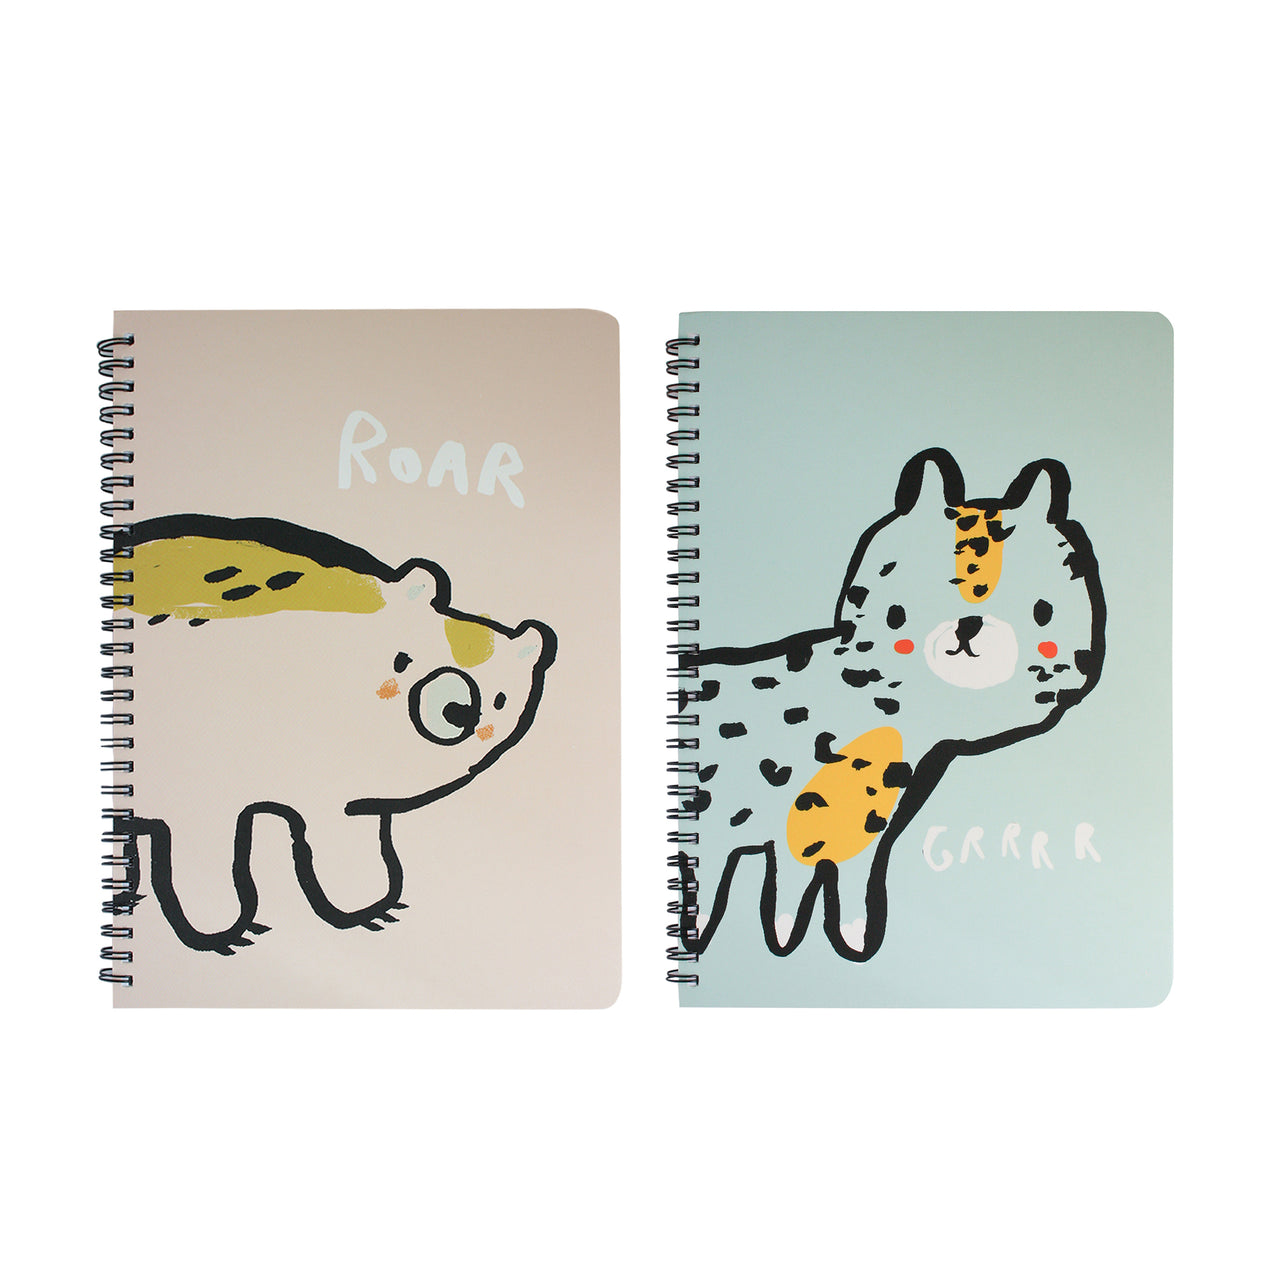 A5 Cartoon Animal Notebook - Set of 2